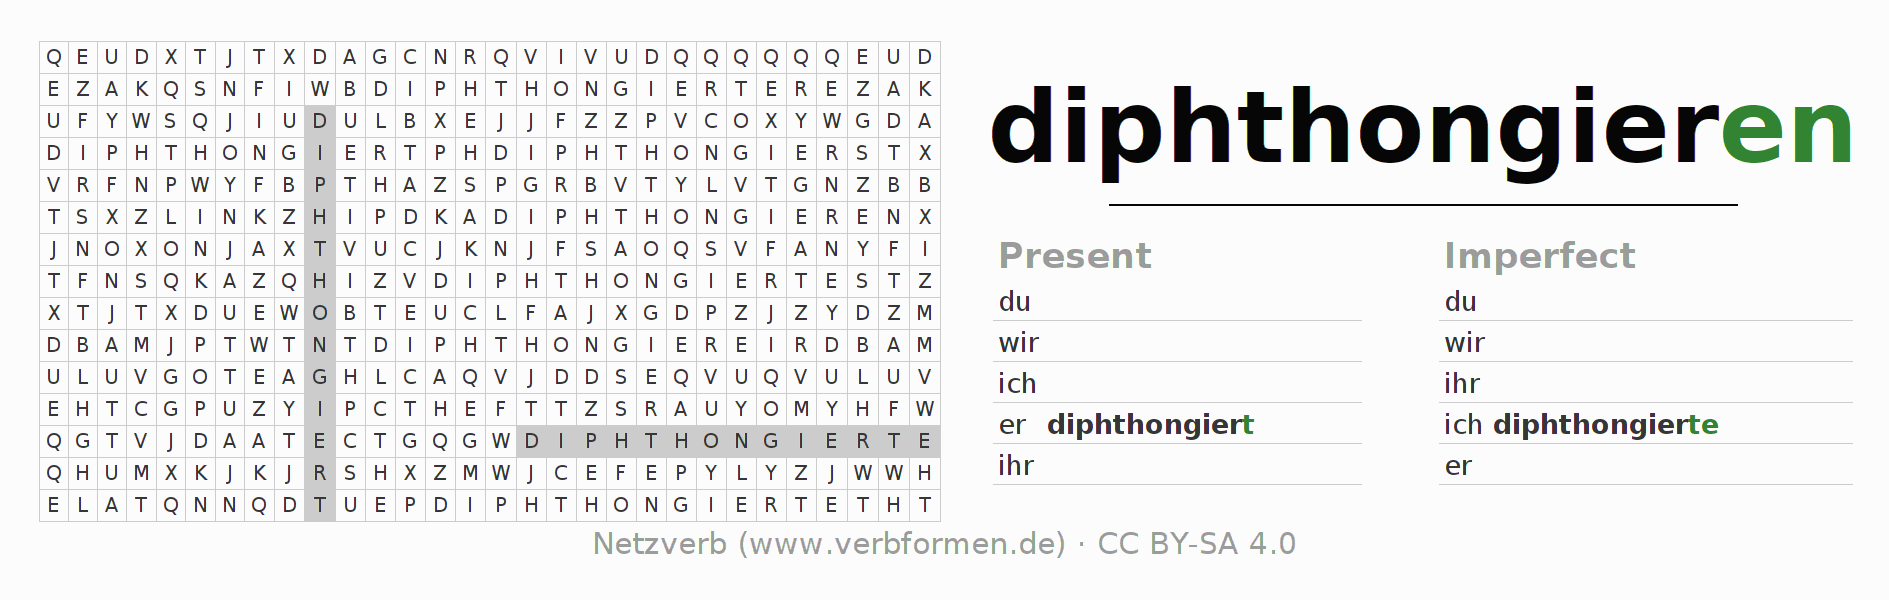 Word search puzzle for the conjugation of the verb diphthongieren